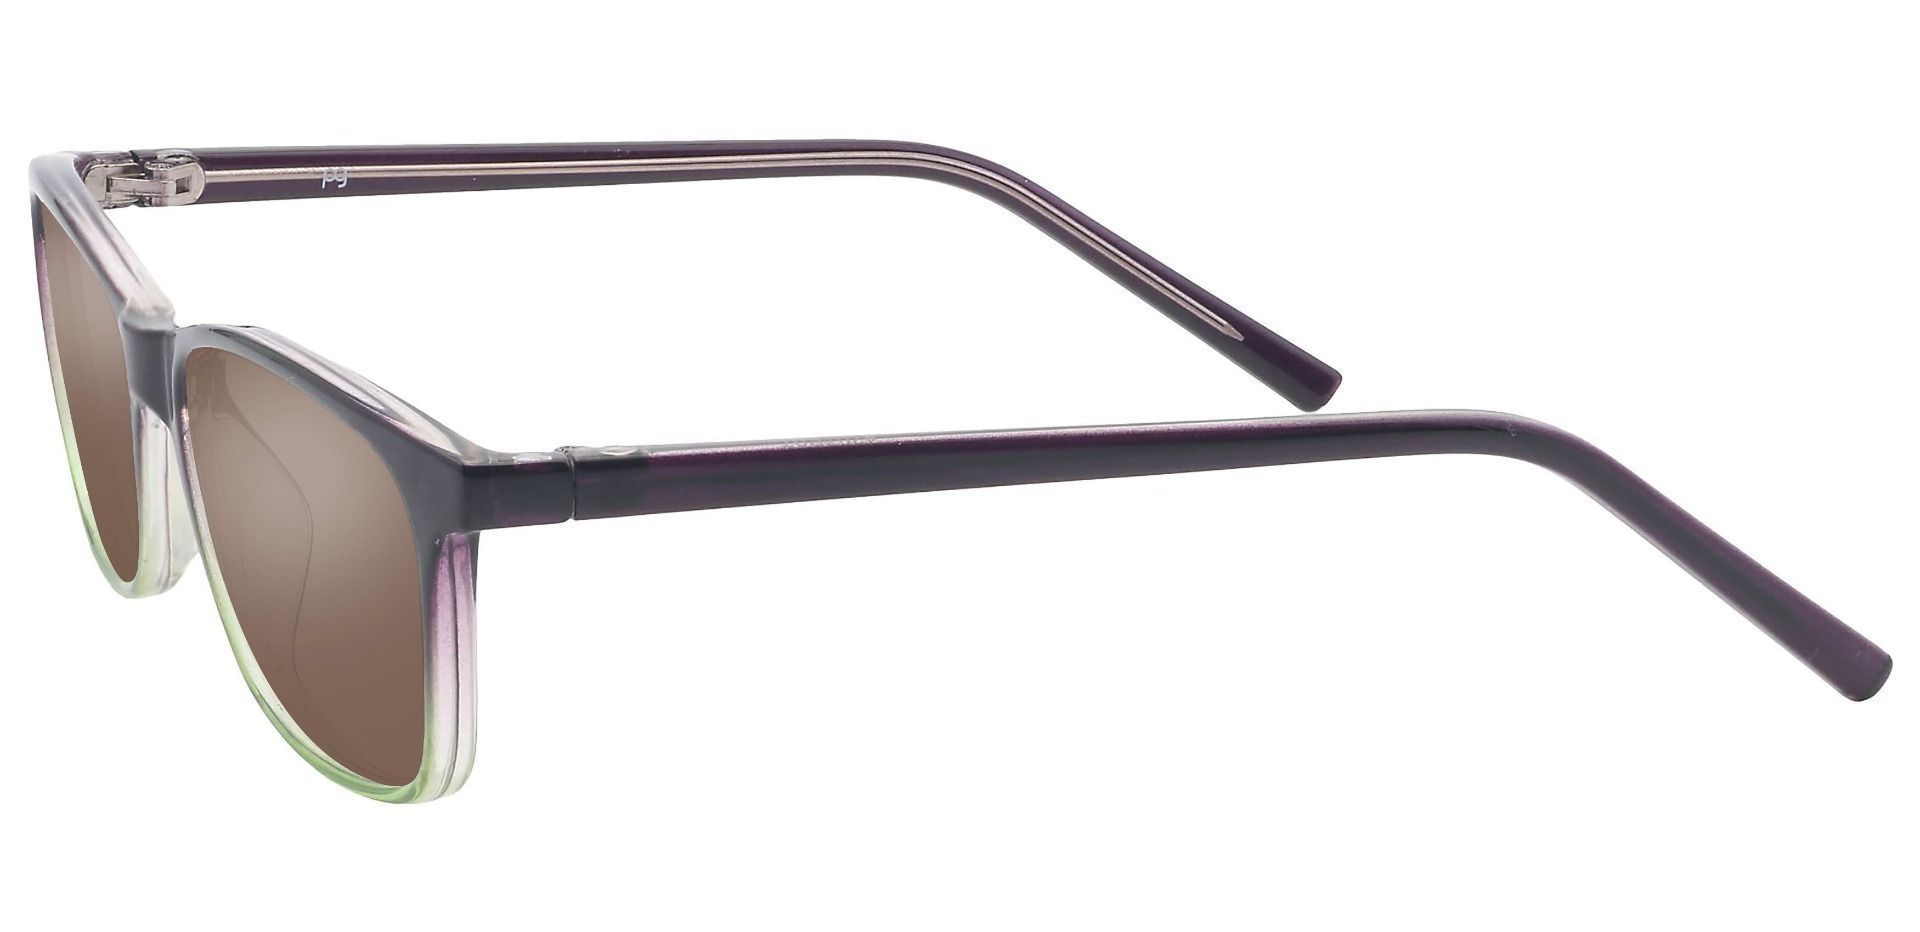 Safita Oval Lined Bifocal Sunglasses -  Purple Frame With Brown Lenses